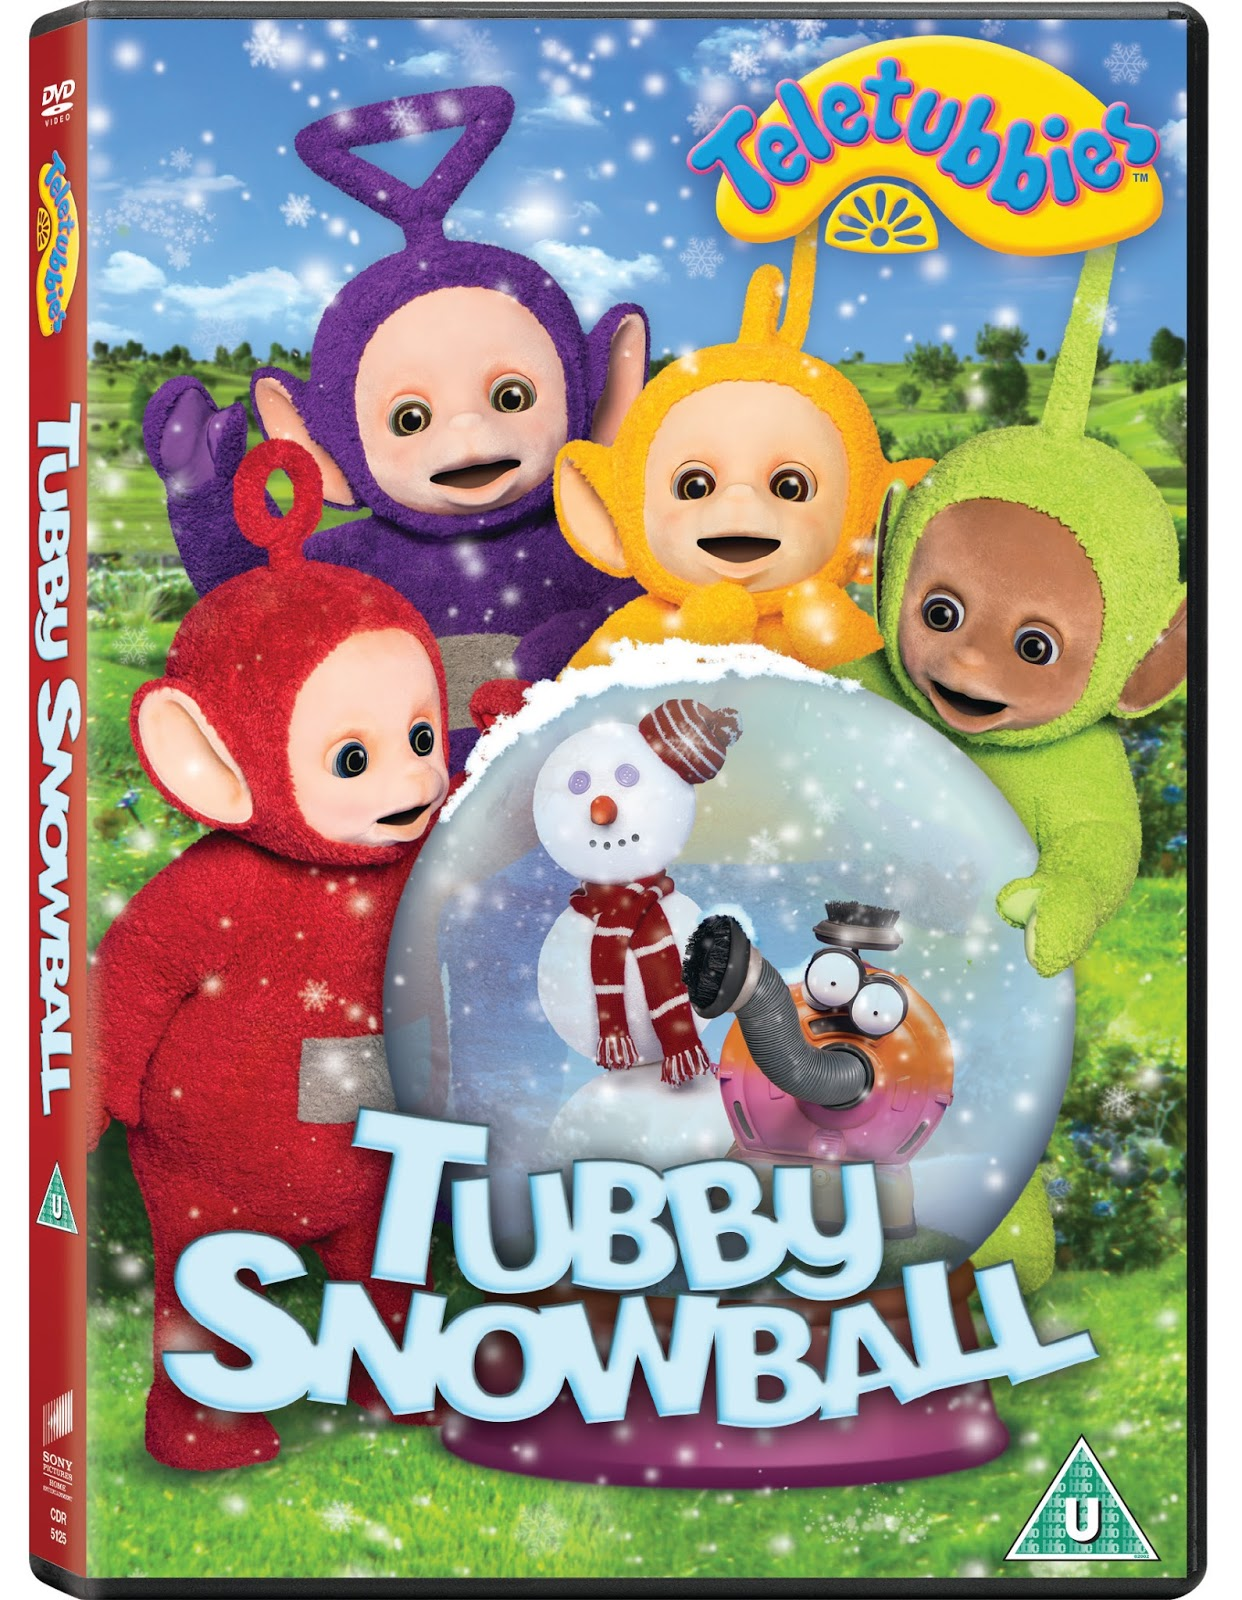 Christmas Giveaway: Teletubbies Tubby snowball on DVD | Joanna Victoria